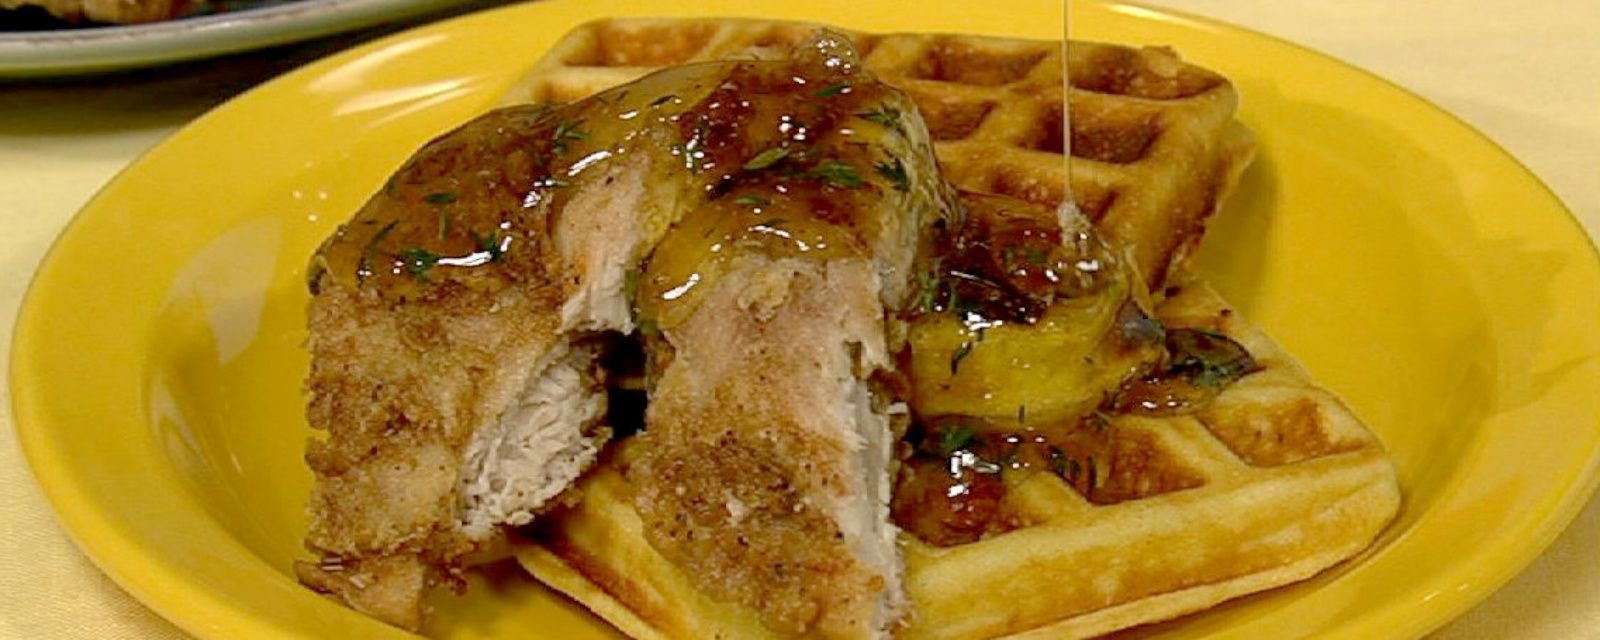 Chicken and waffles recipe by carla hall the chew